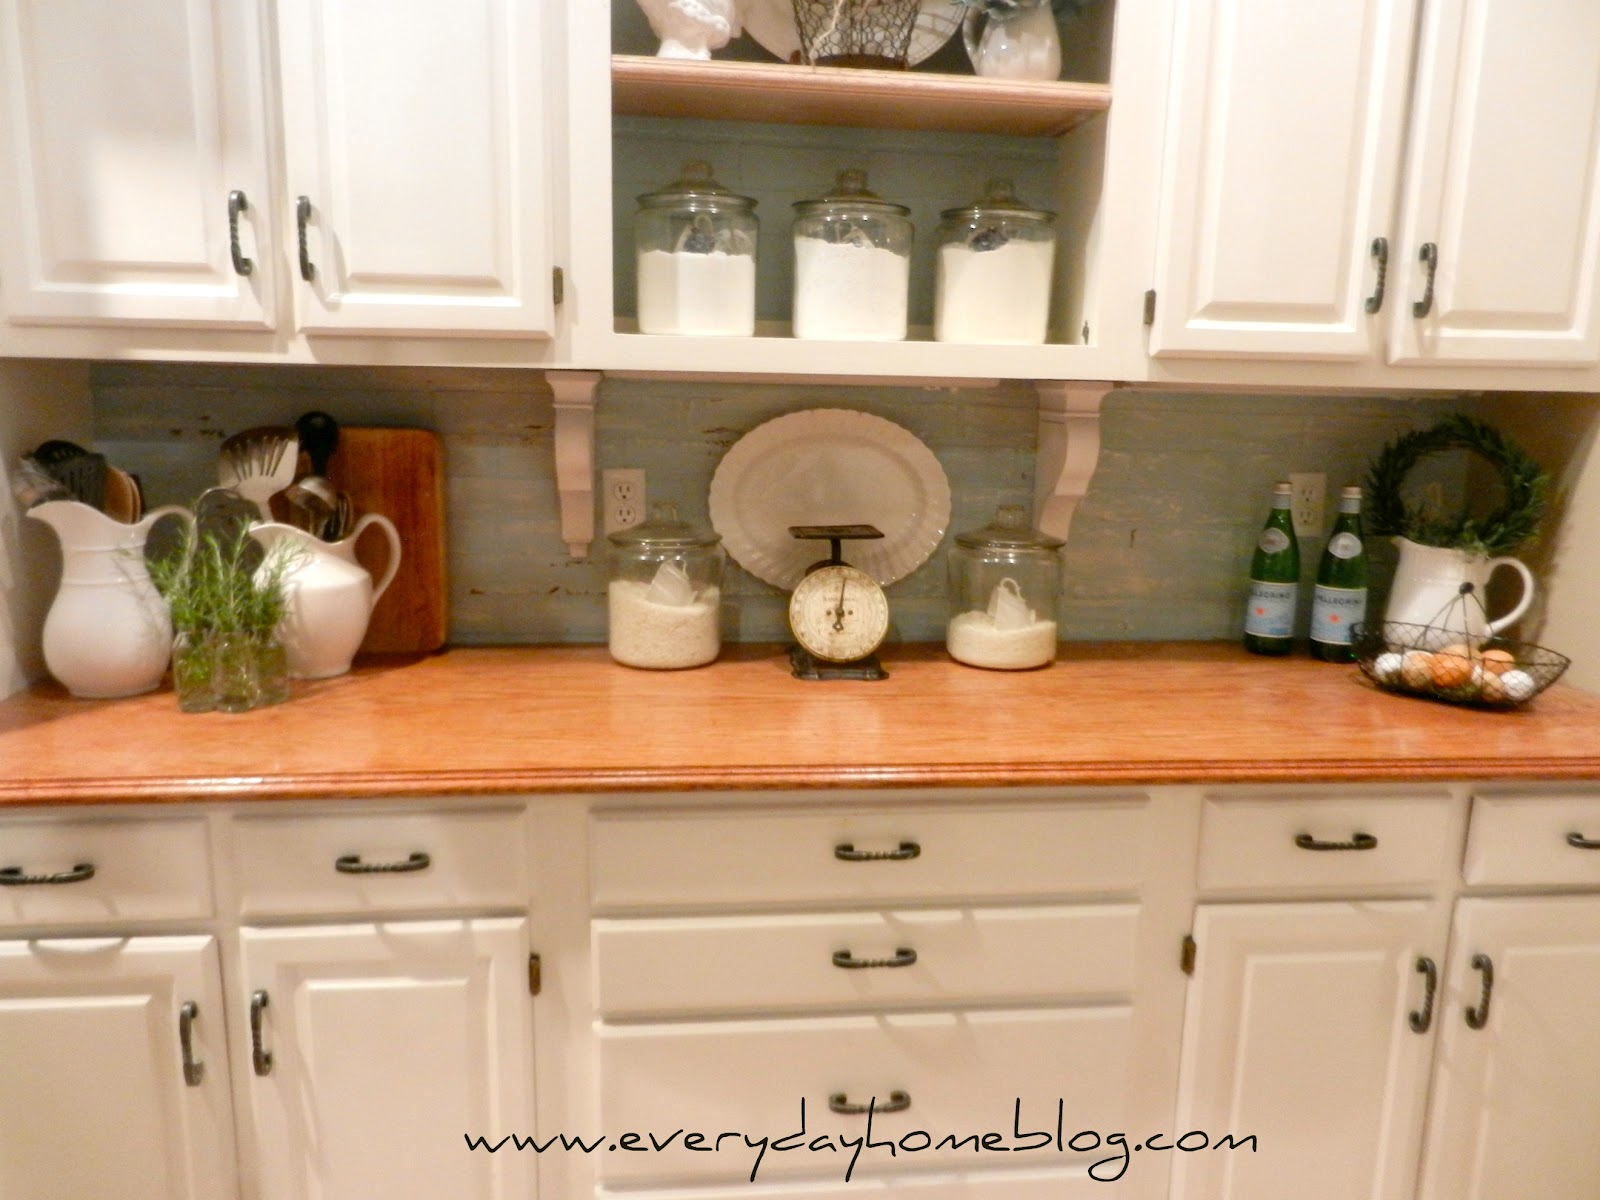 brick backsplash in kitchen best knobs budget friendly painted at the everyday home white cabinets corbels faux paint